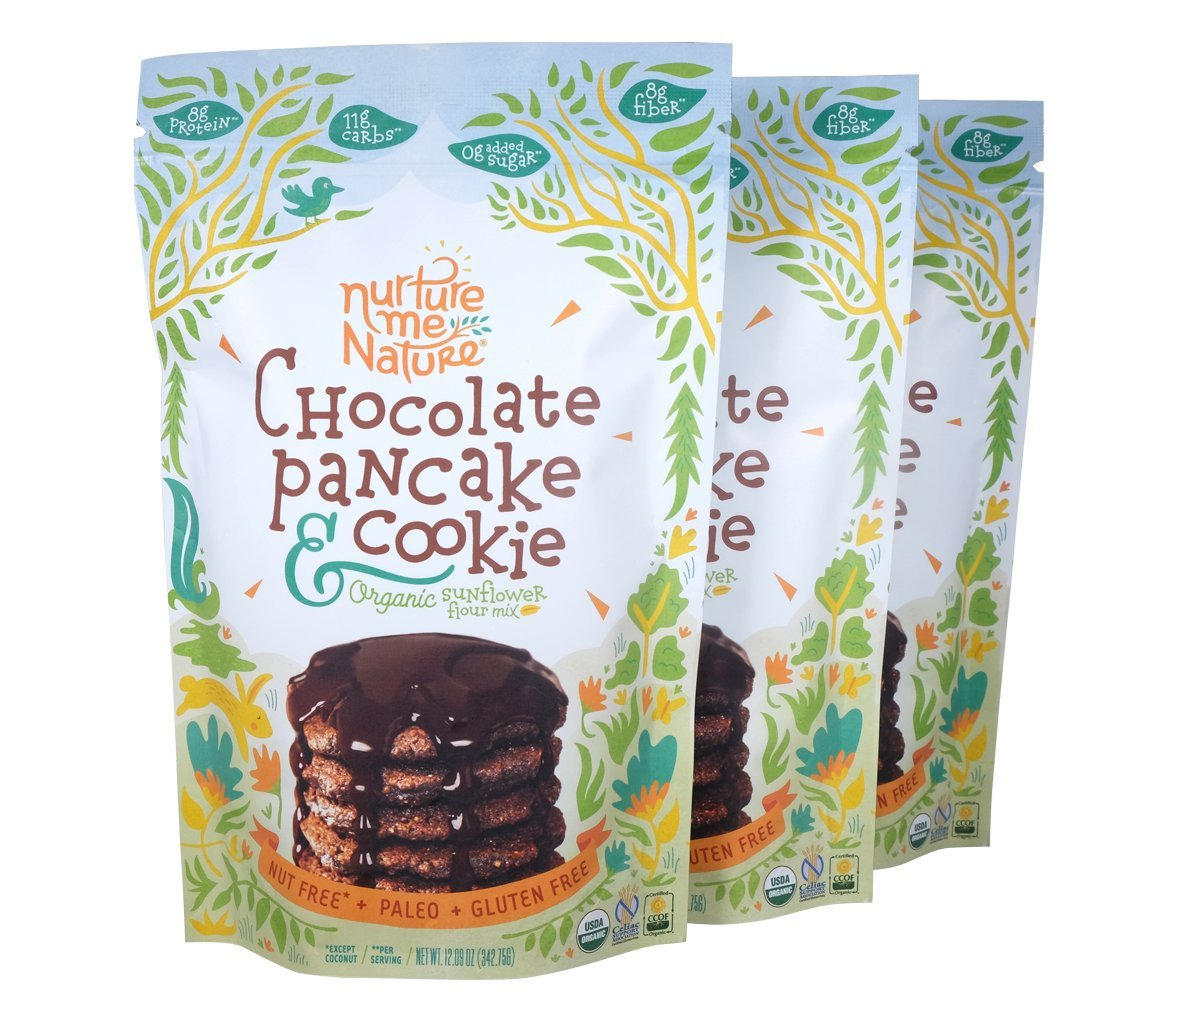 Paleo Nut Free Chocolate Pancake & Cookie Baking Mix / USDA Organic (Pack of 3)